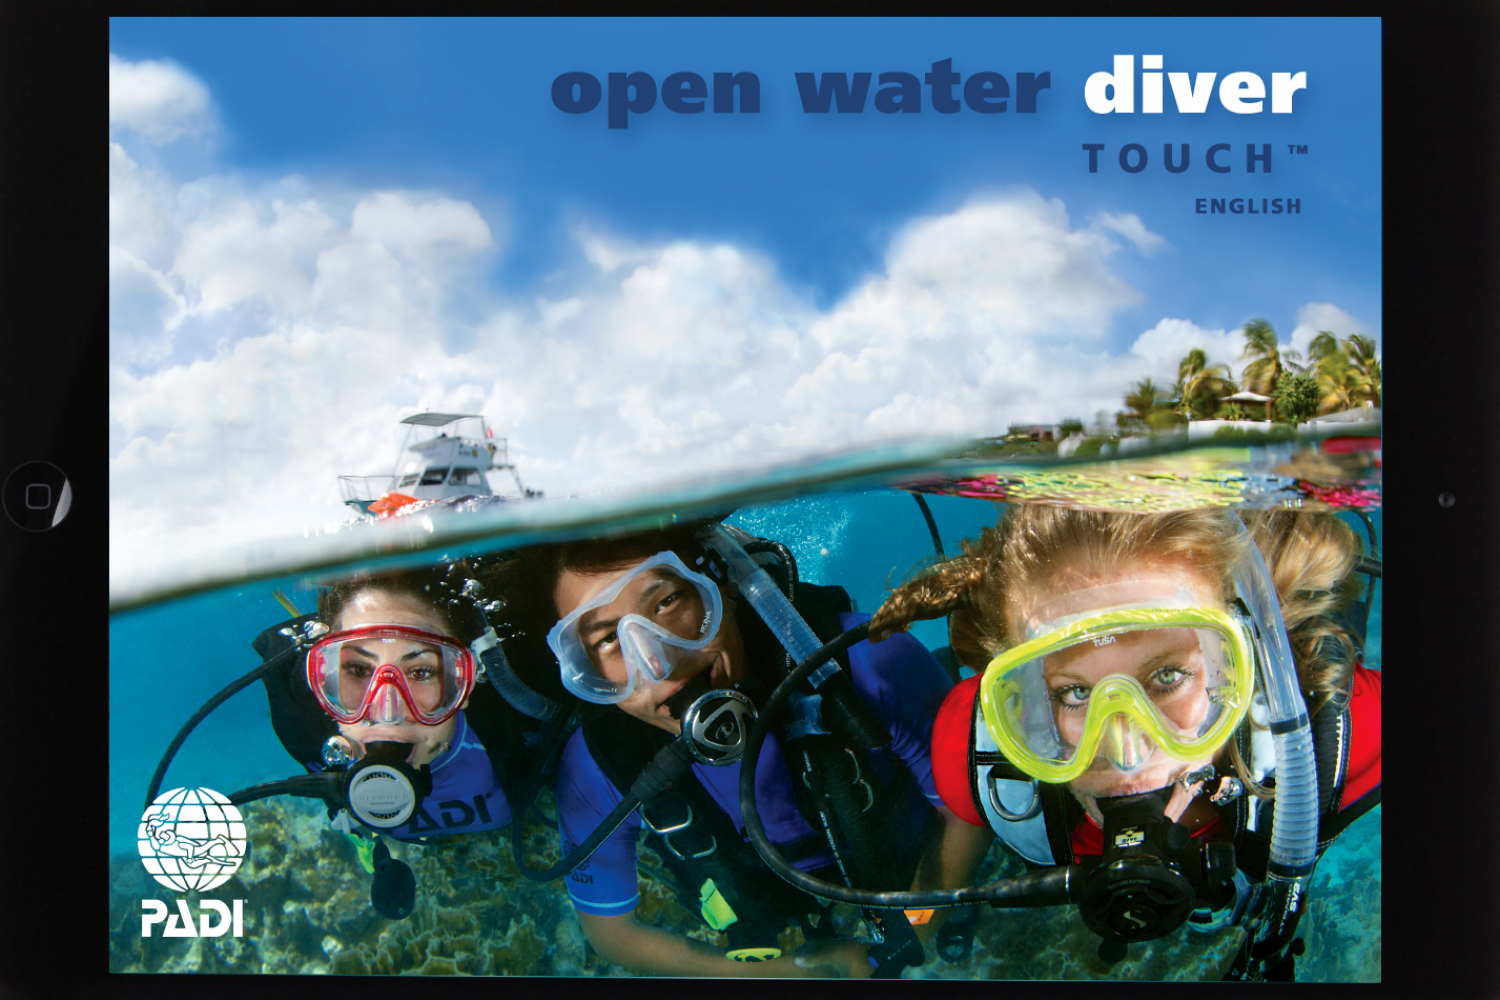 PADI Open Water Diver/ PADI TOUCH